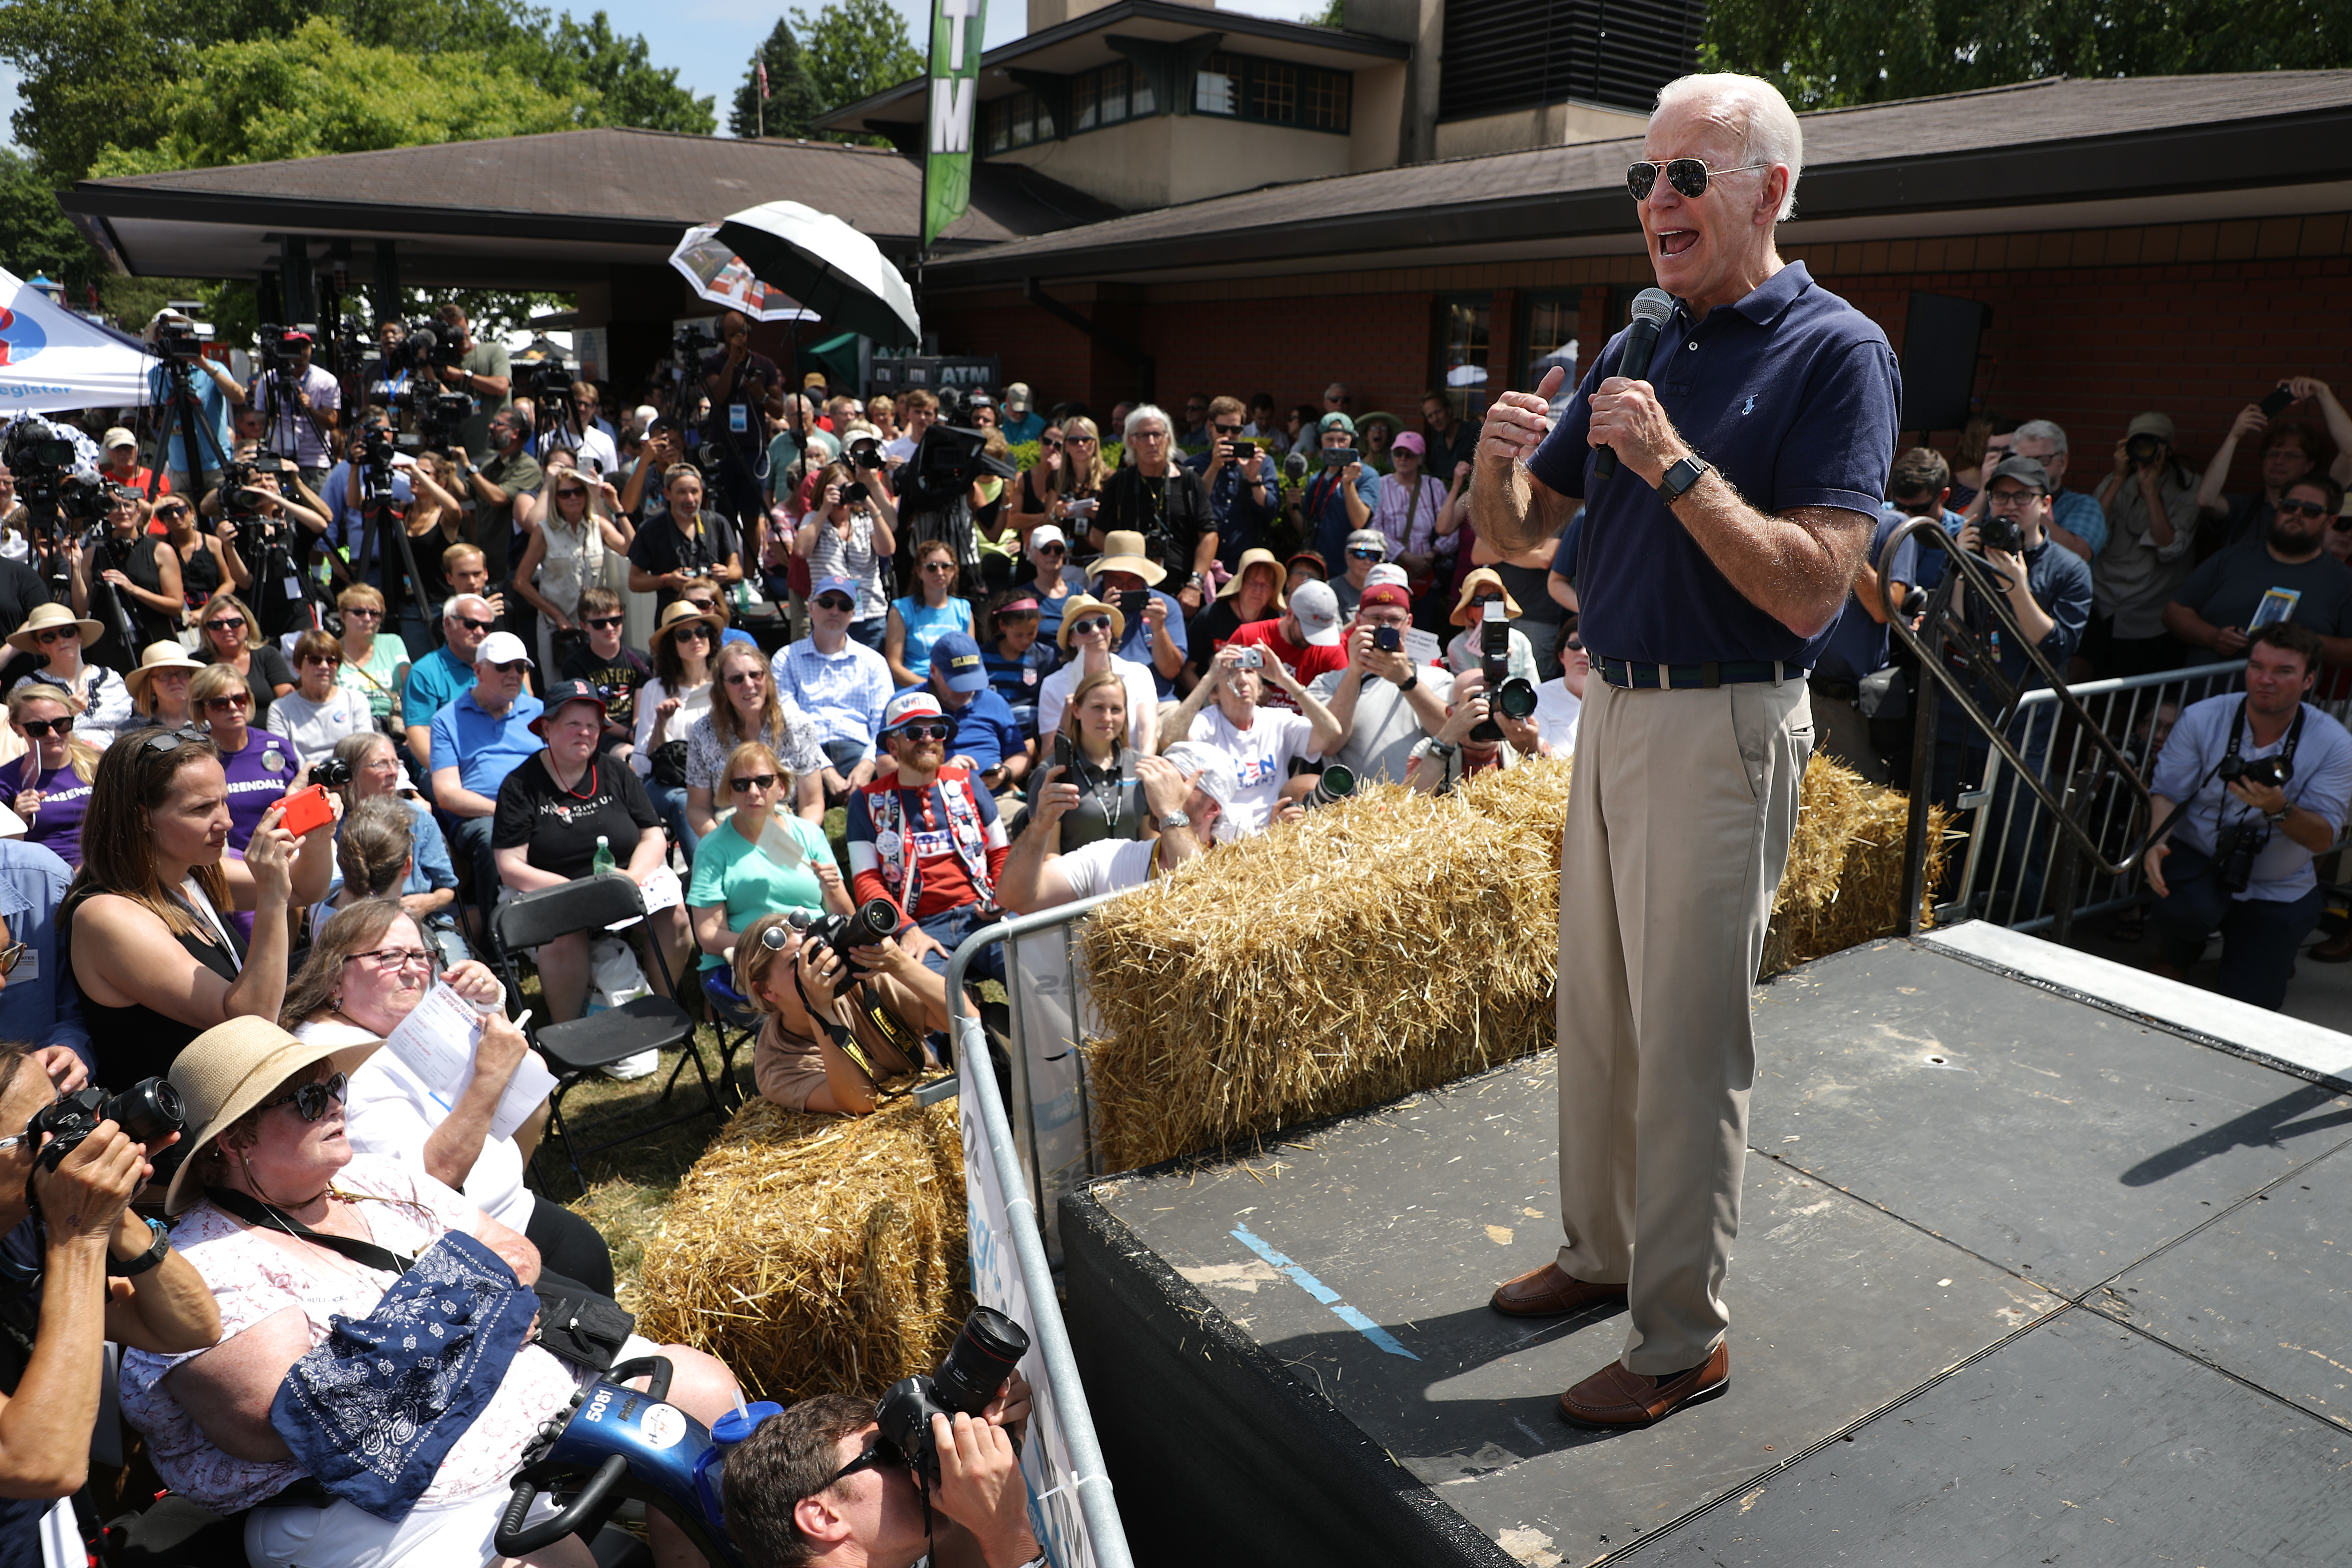 Democratic presidential candidate and former Vice President Joe Biden delivers a 20-minute campaign speech at the Des Moines Register Political Soapbox at the Iowa State Fair August 08, 2019 in Des Moines, Iowa. 22 of the 23 politicians seeking the Democratic Party presidential nomination will be visiting the fair this week, six months ahead of the all-important Iowa caucuses.